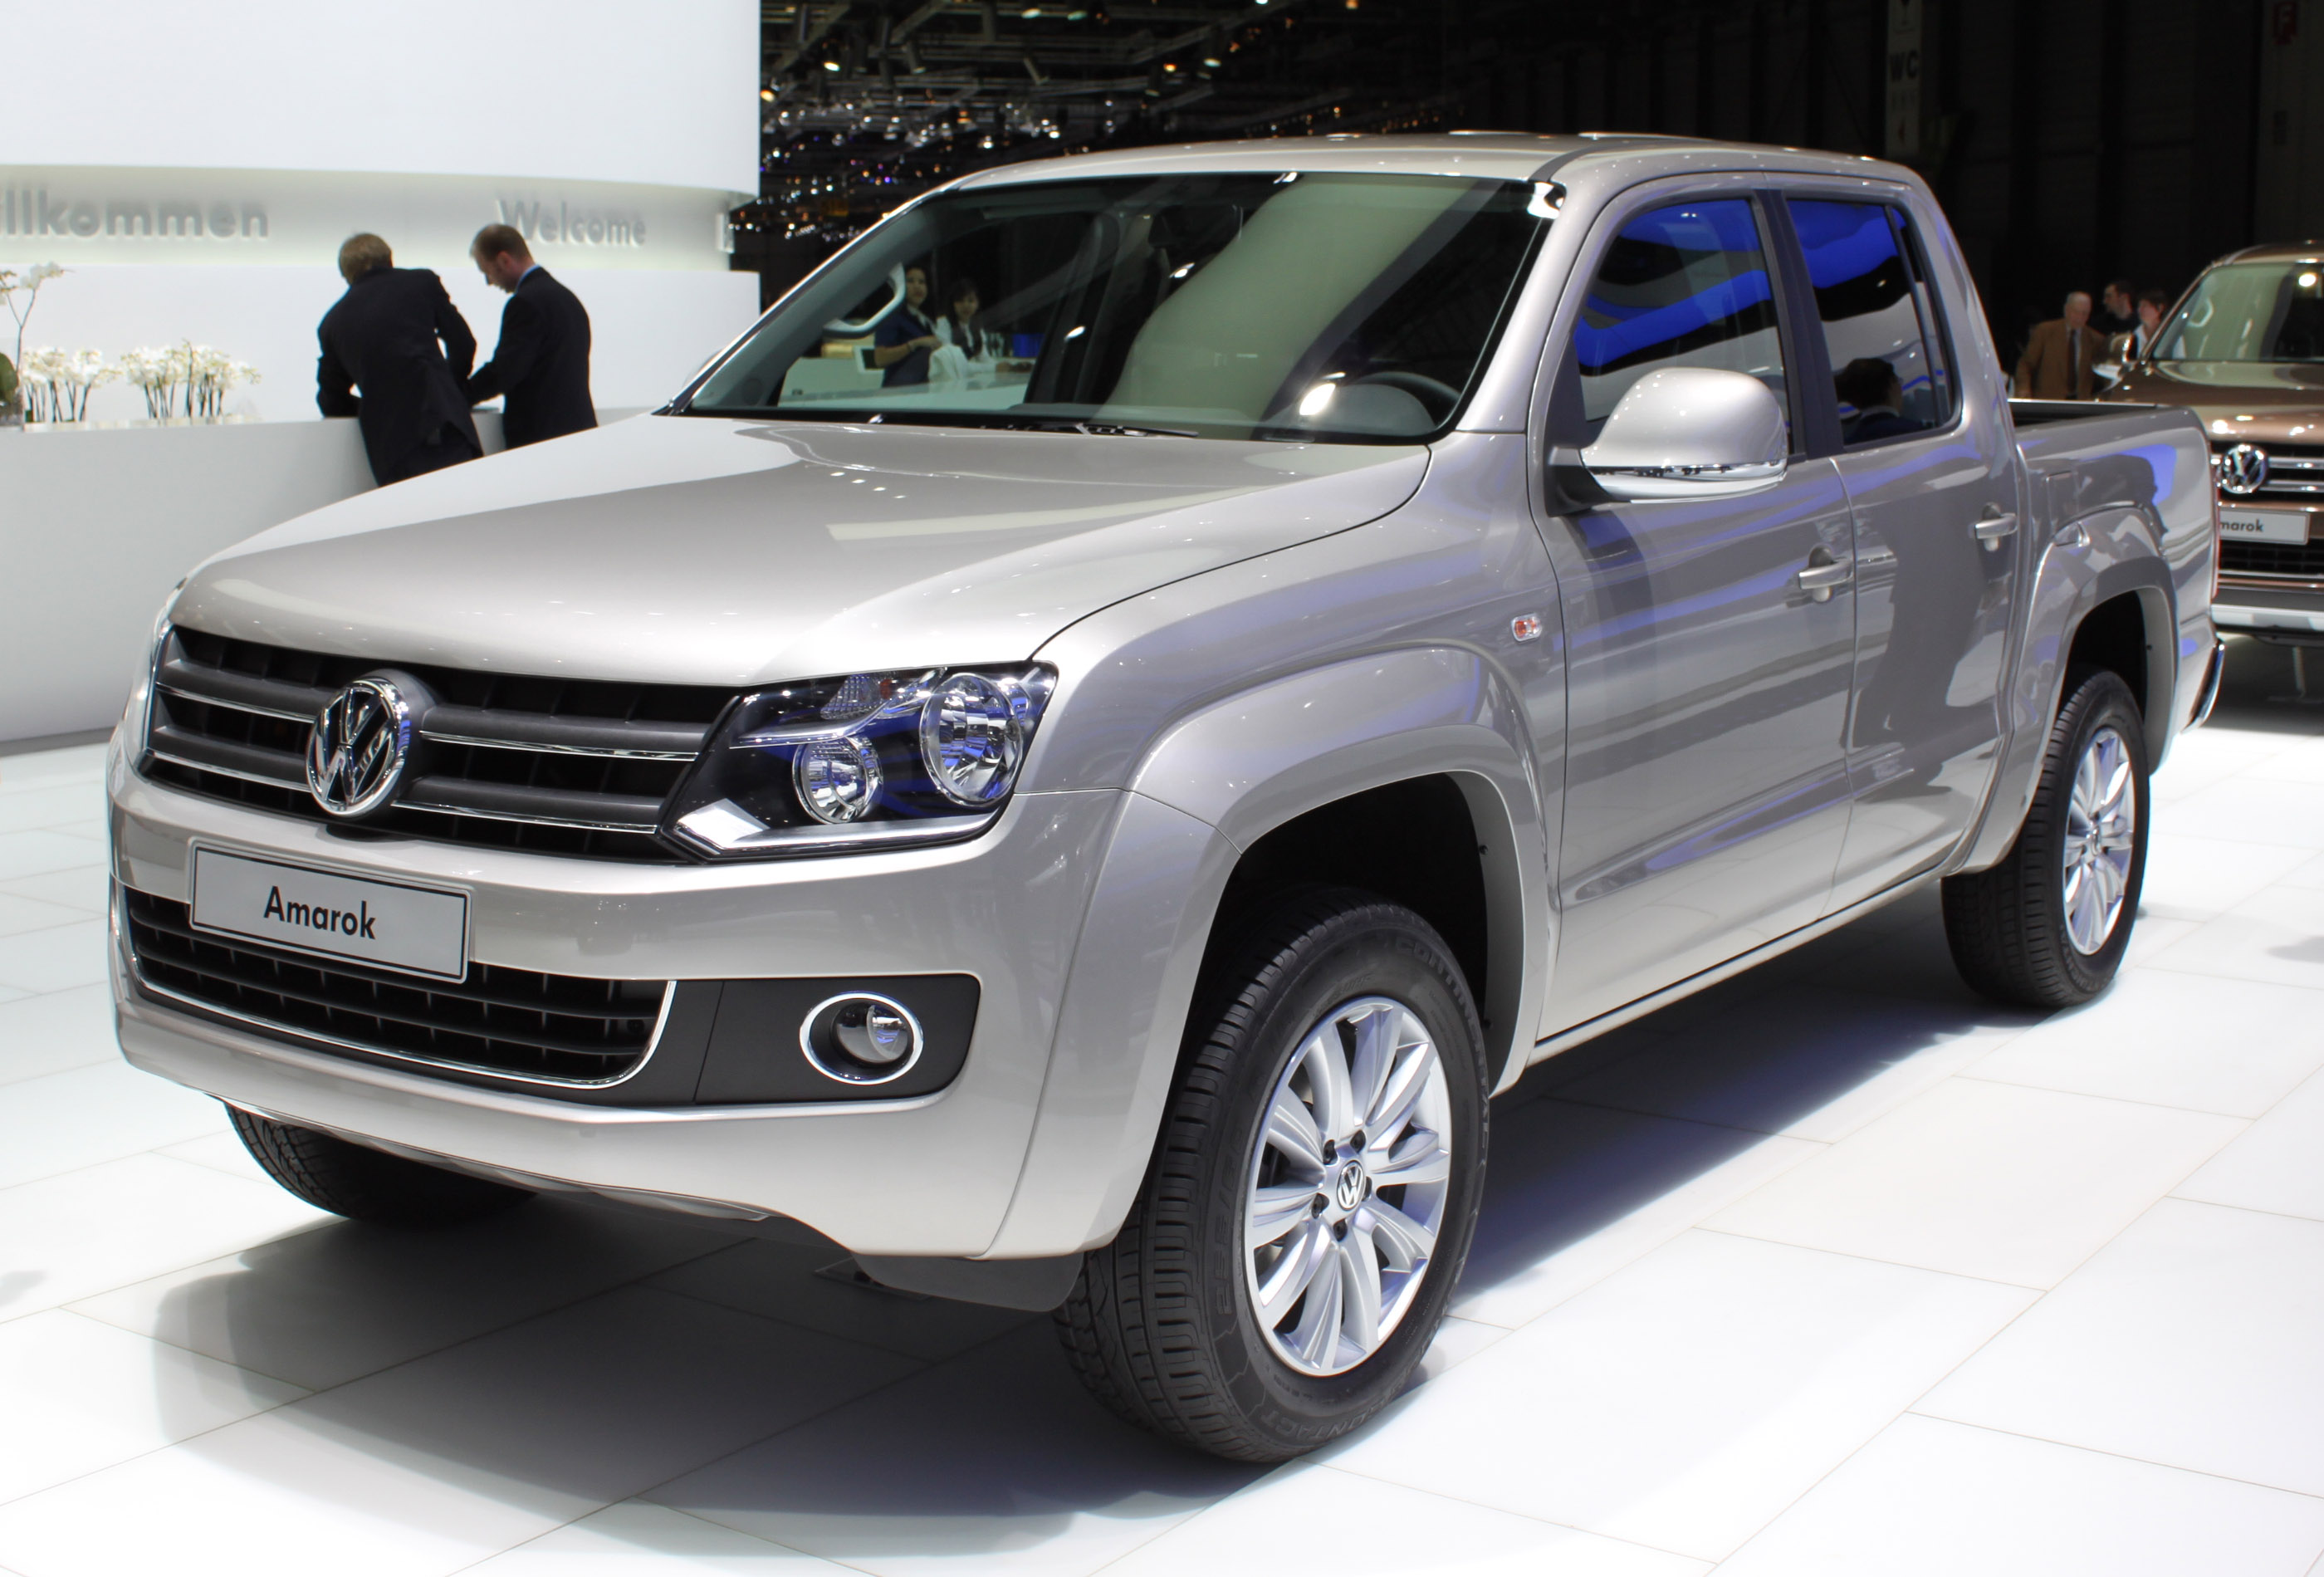 Volkswagen U.S. CEO: Amarok Could Come Here if Chicken Tax Goes Away